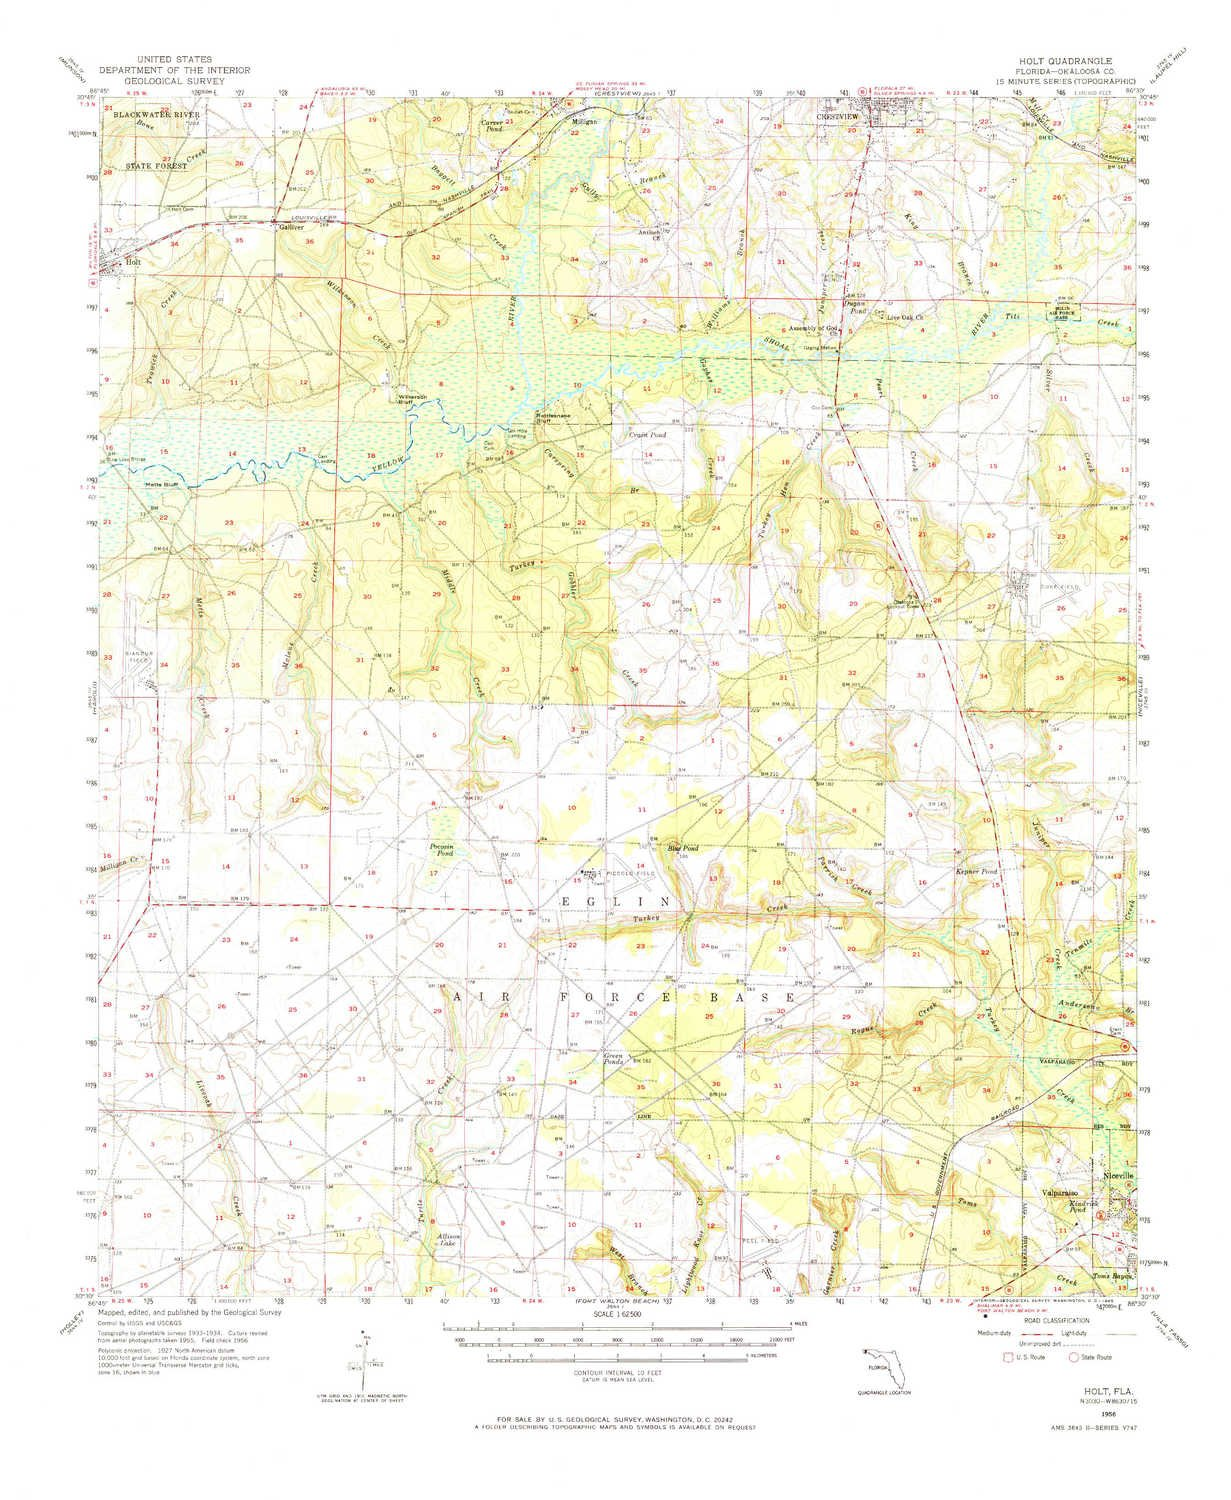 Holt Florida Map.Amazon Com Yellowmaps Holt Fl Topo Map 1 62500 Scale 15 X 15